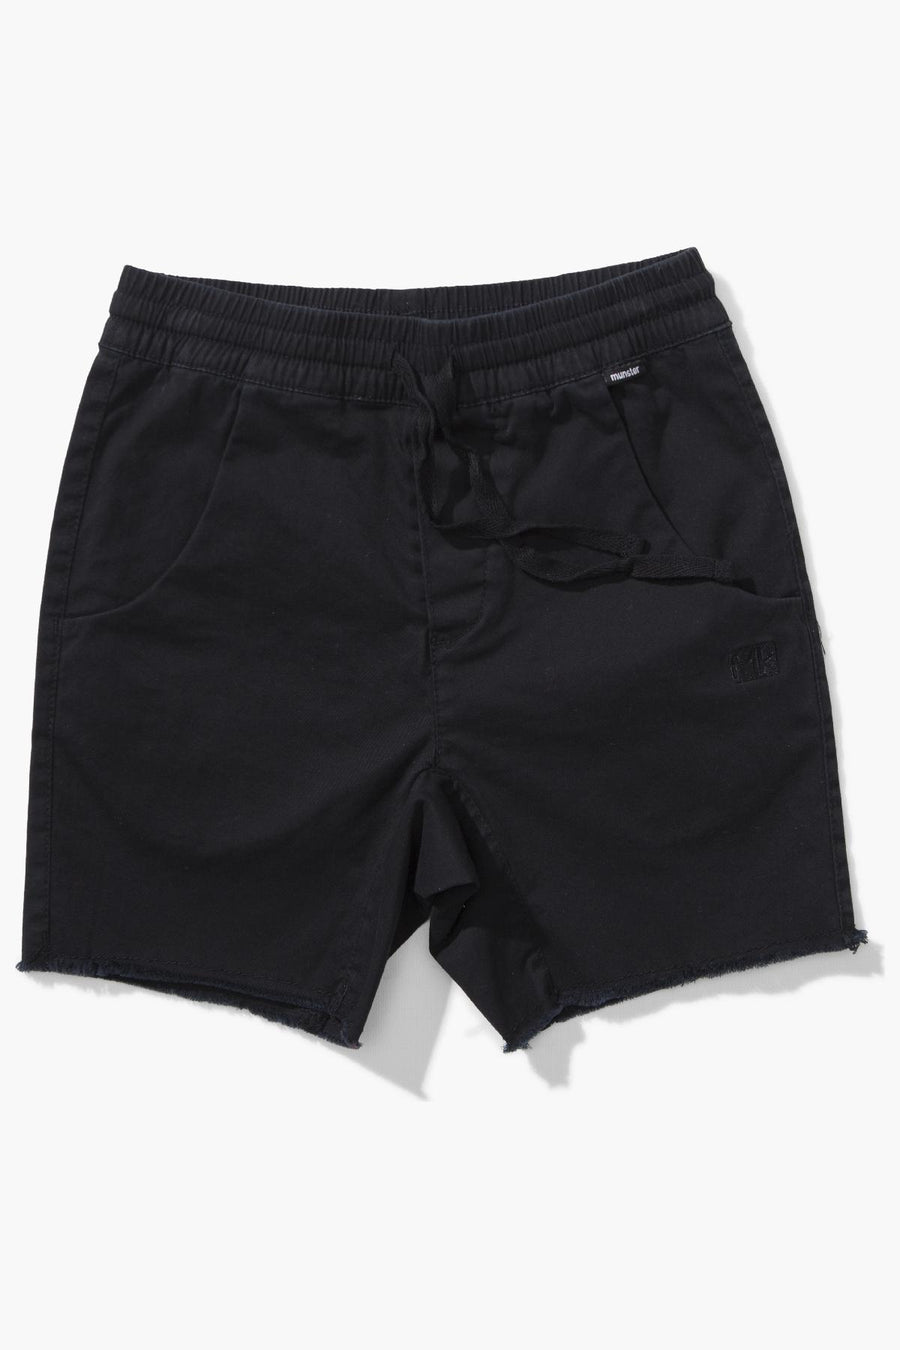 Munster Kids Keramas Short - Black